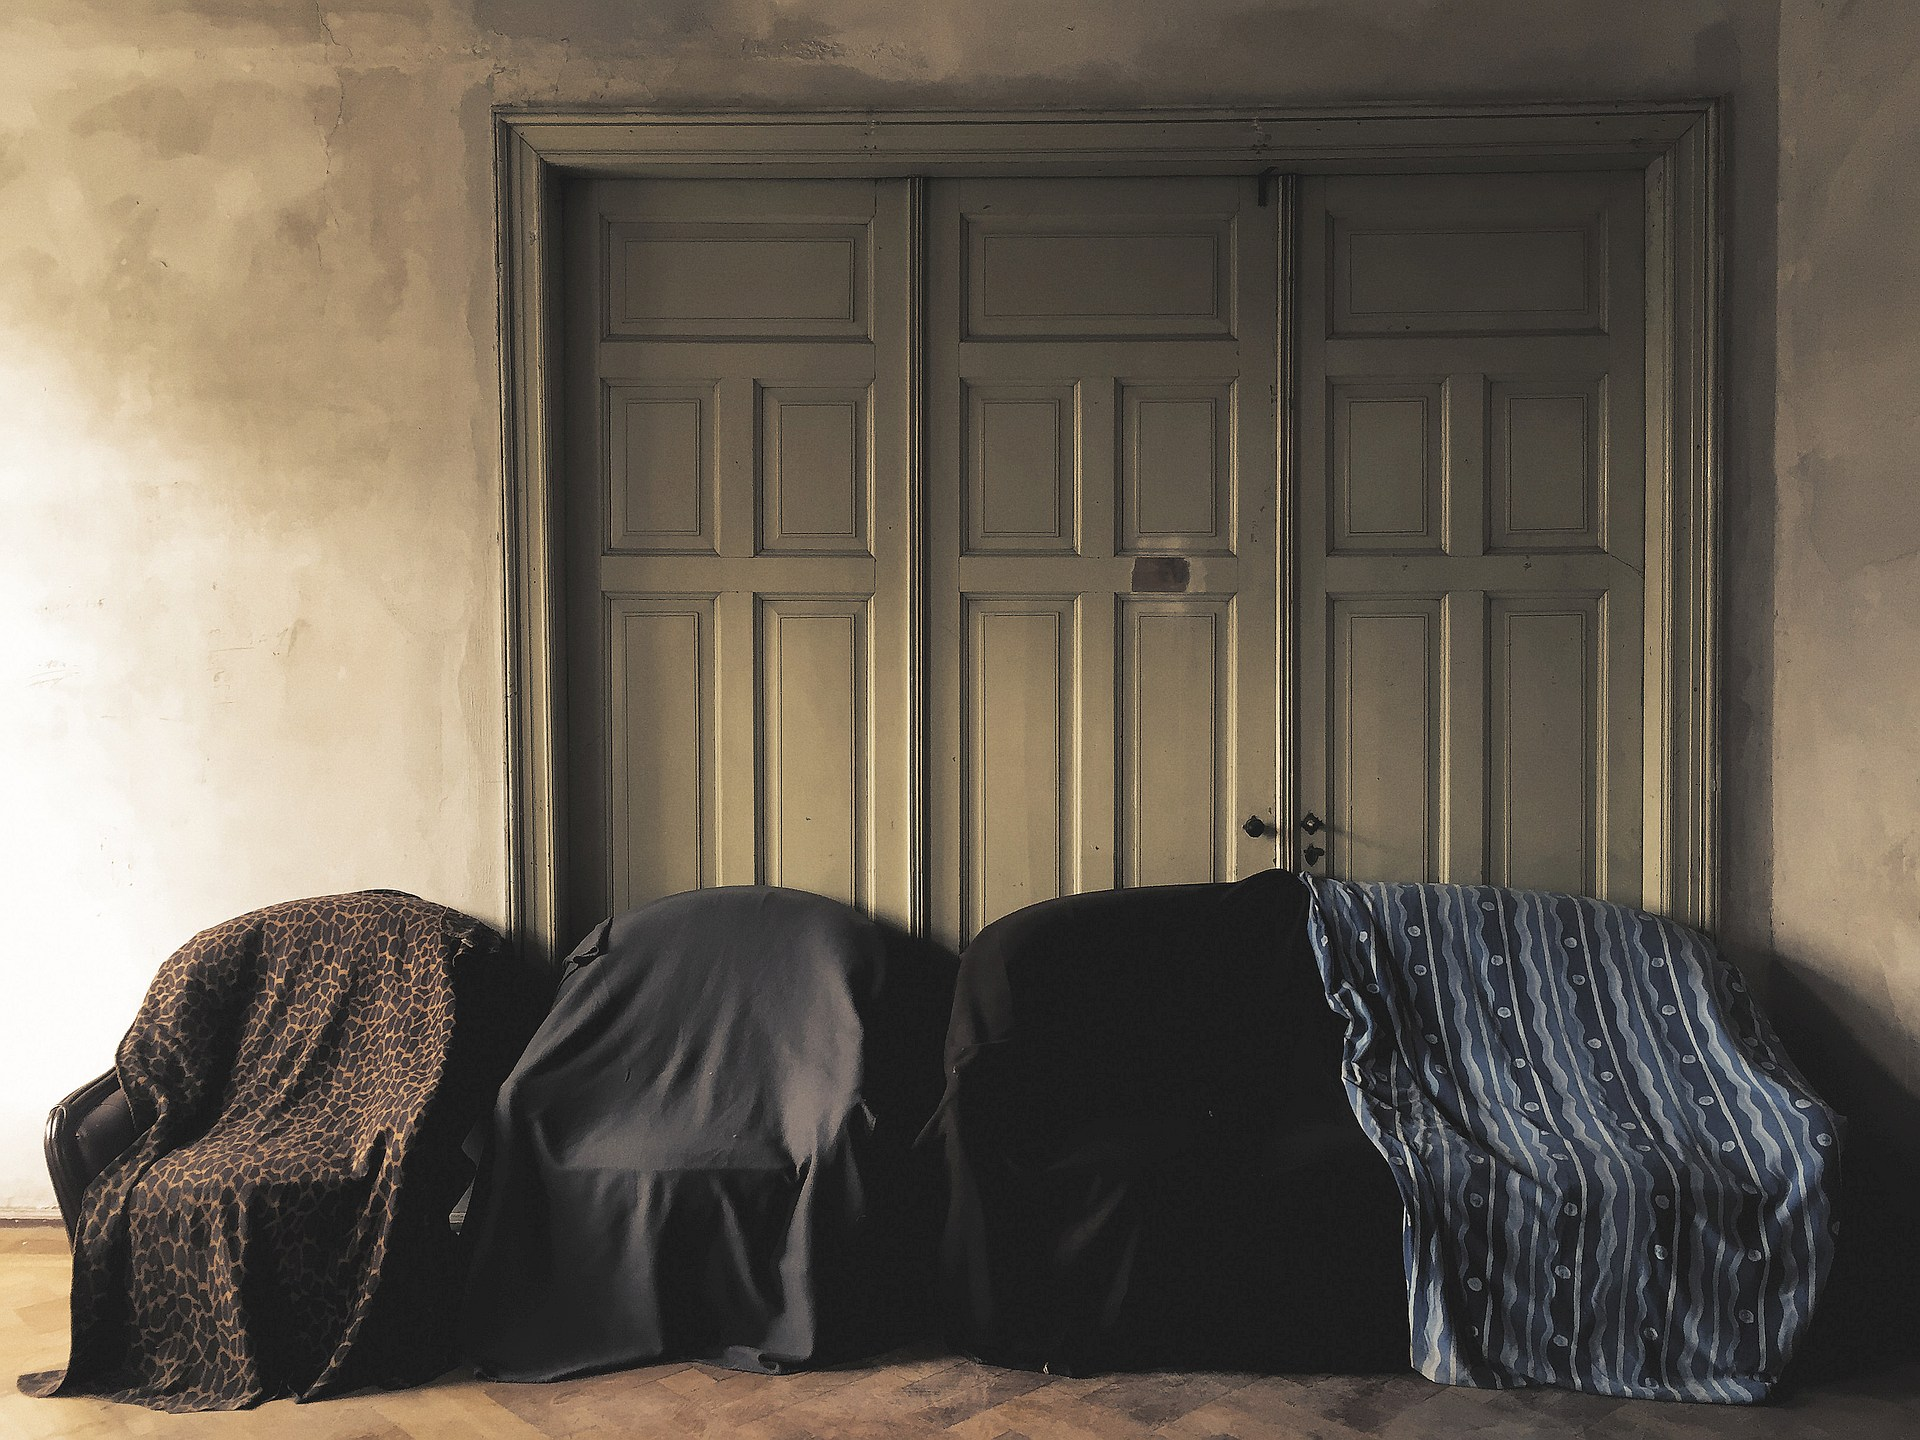 Four covered armchairs